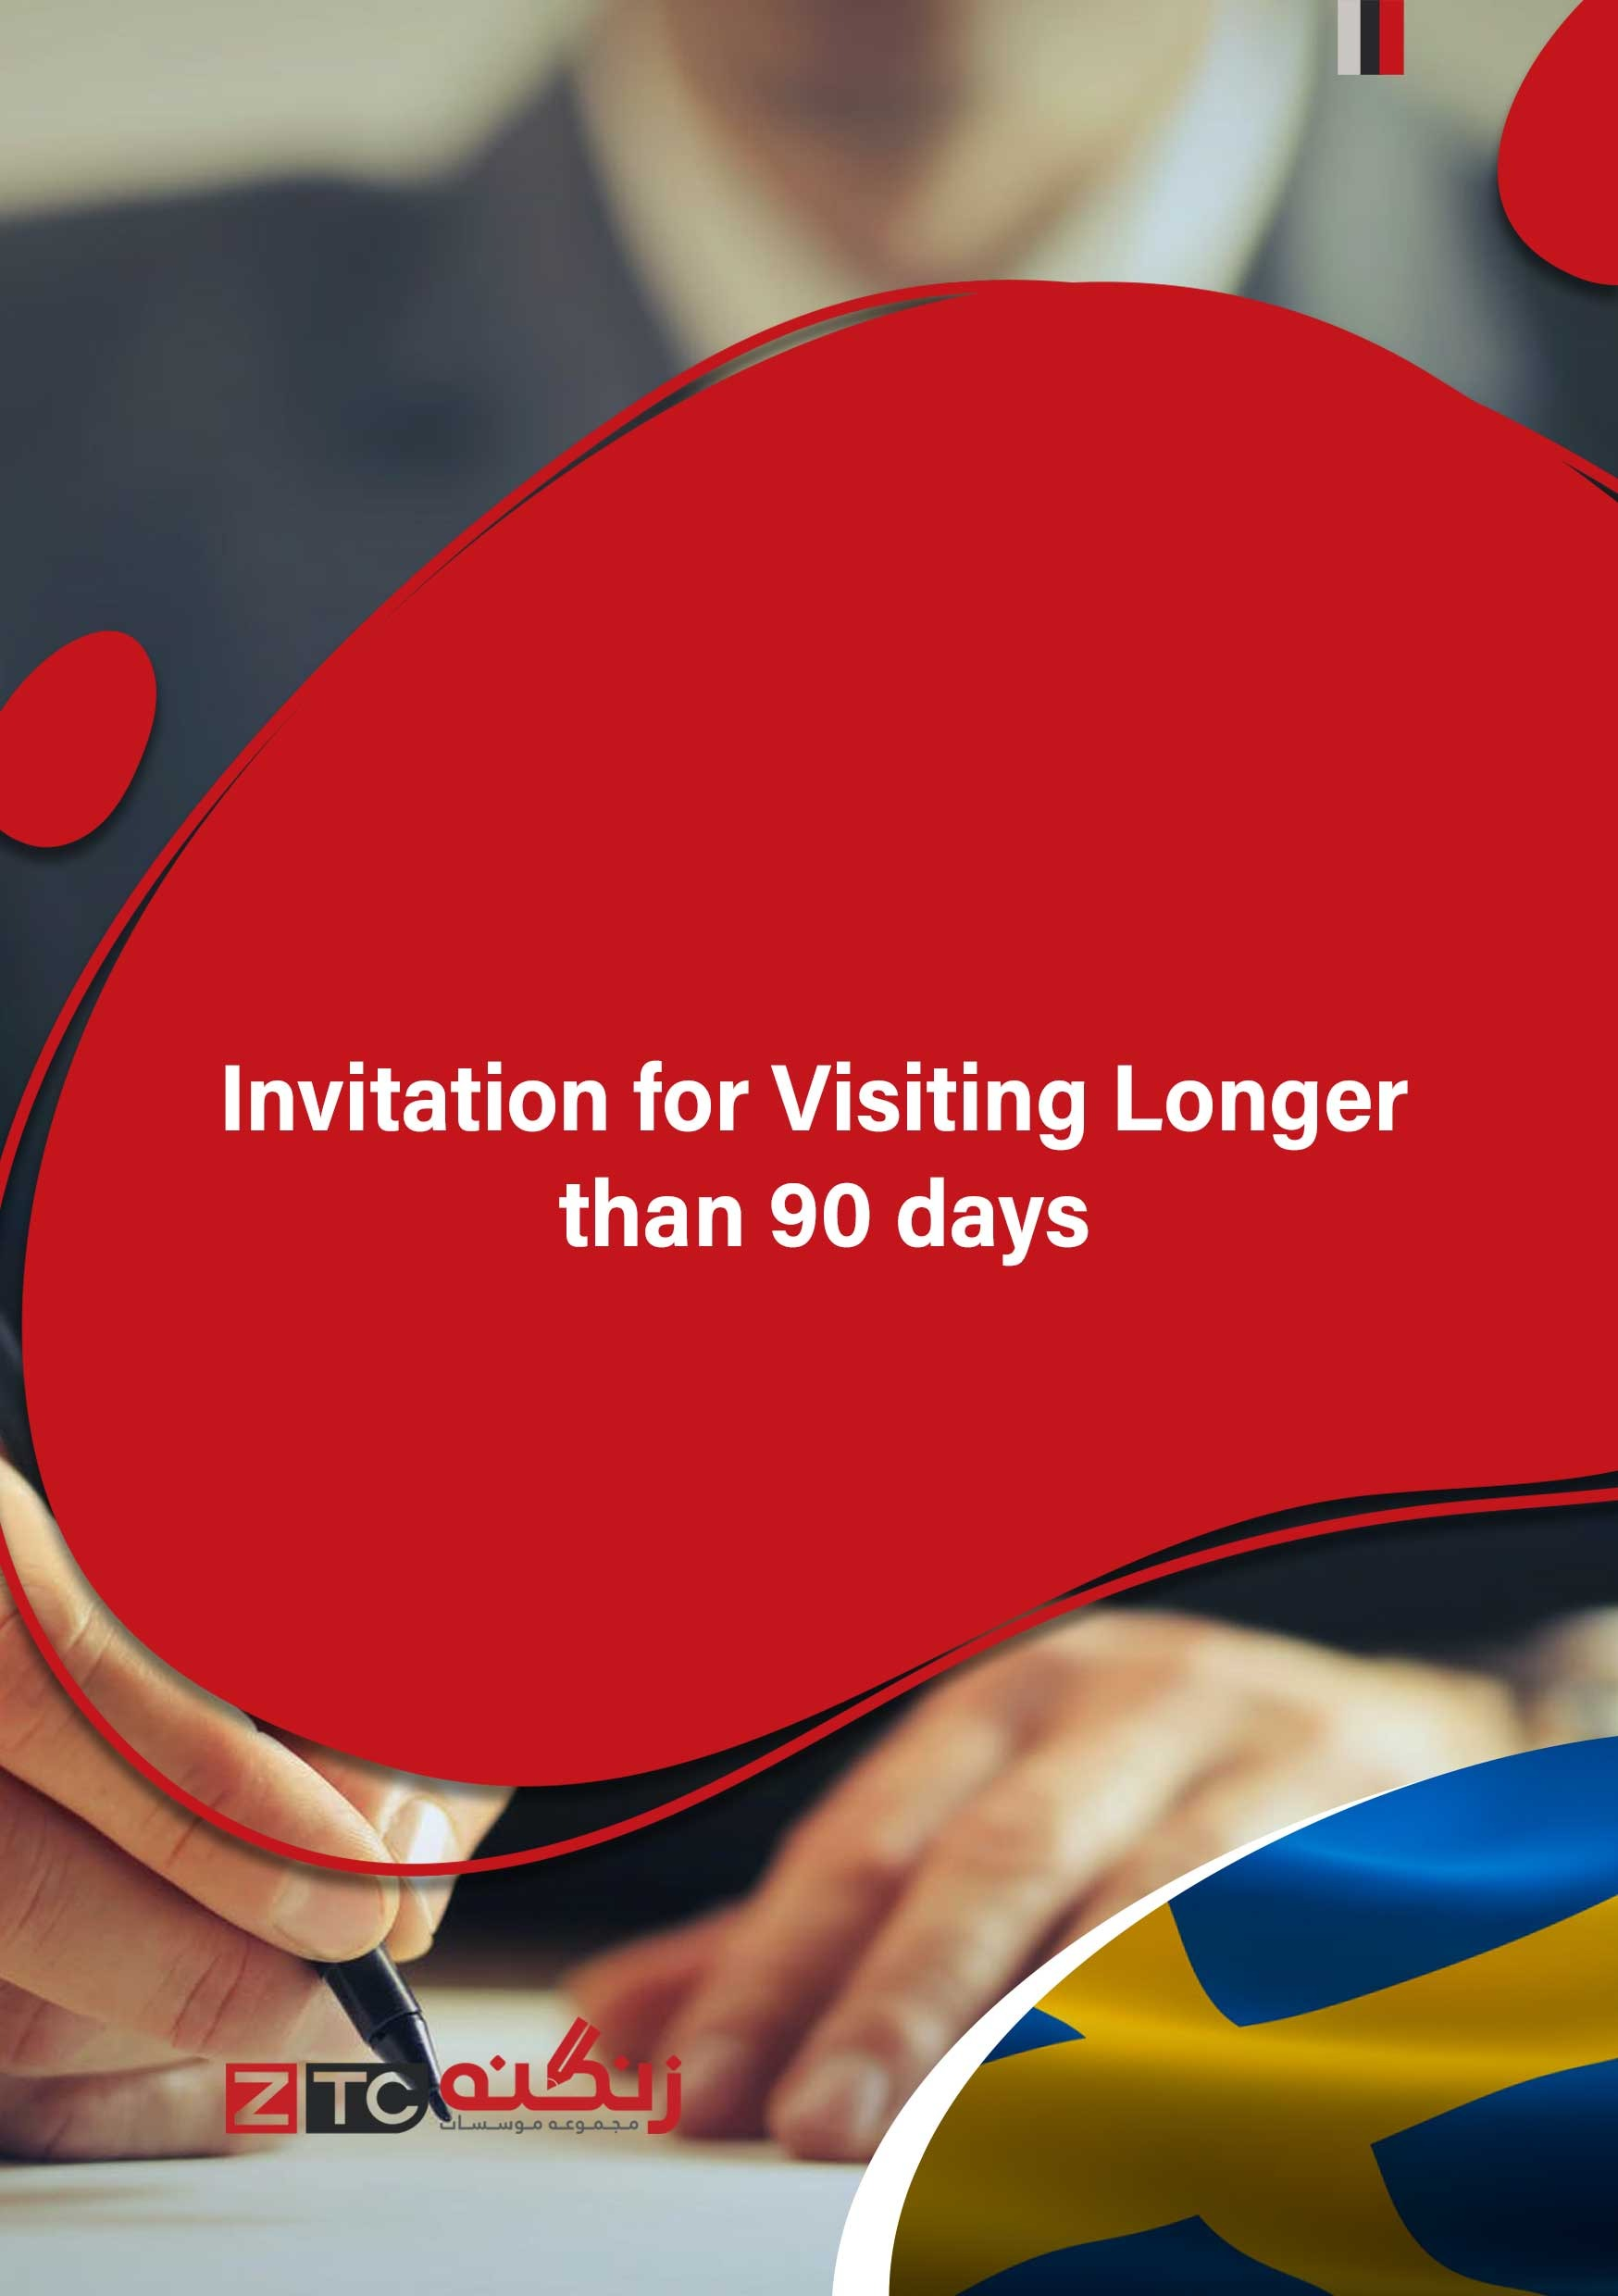 Invitation for Visiting Longer than 90 days